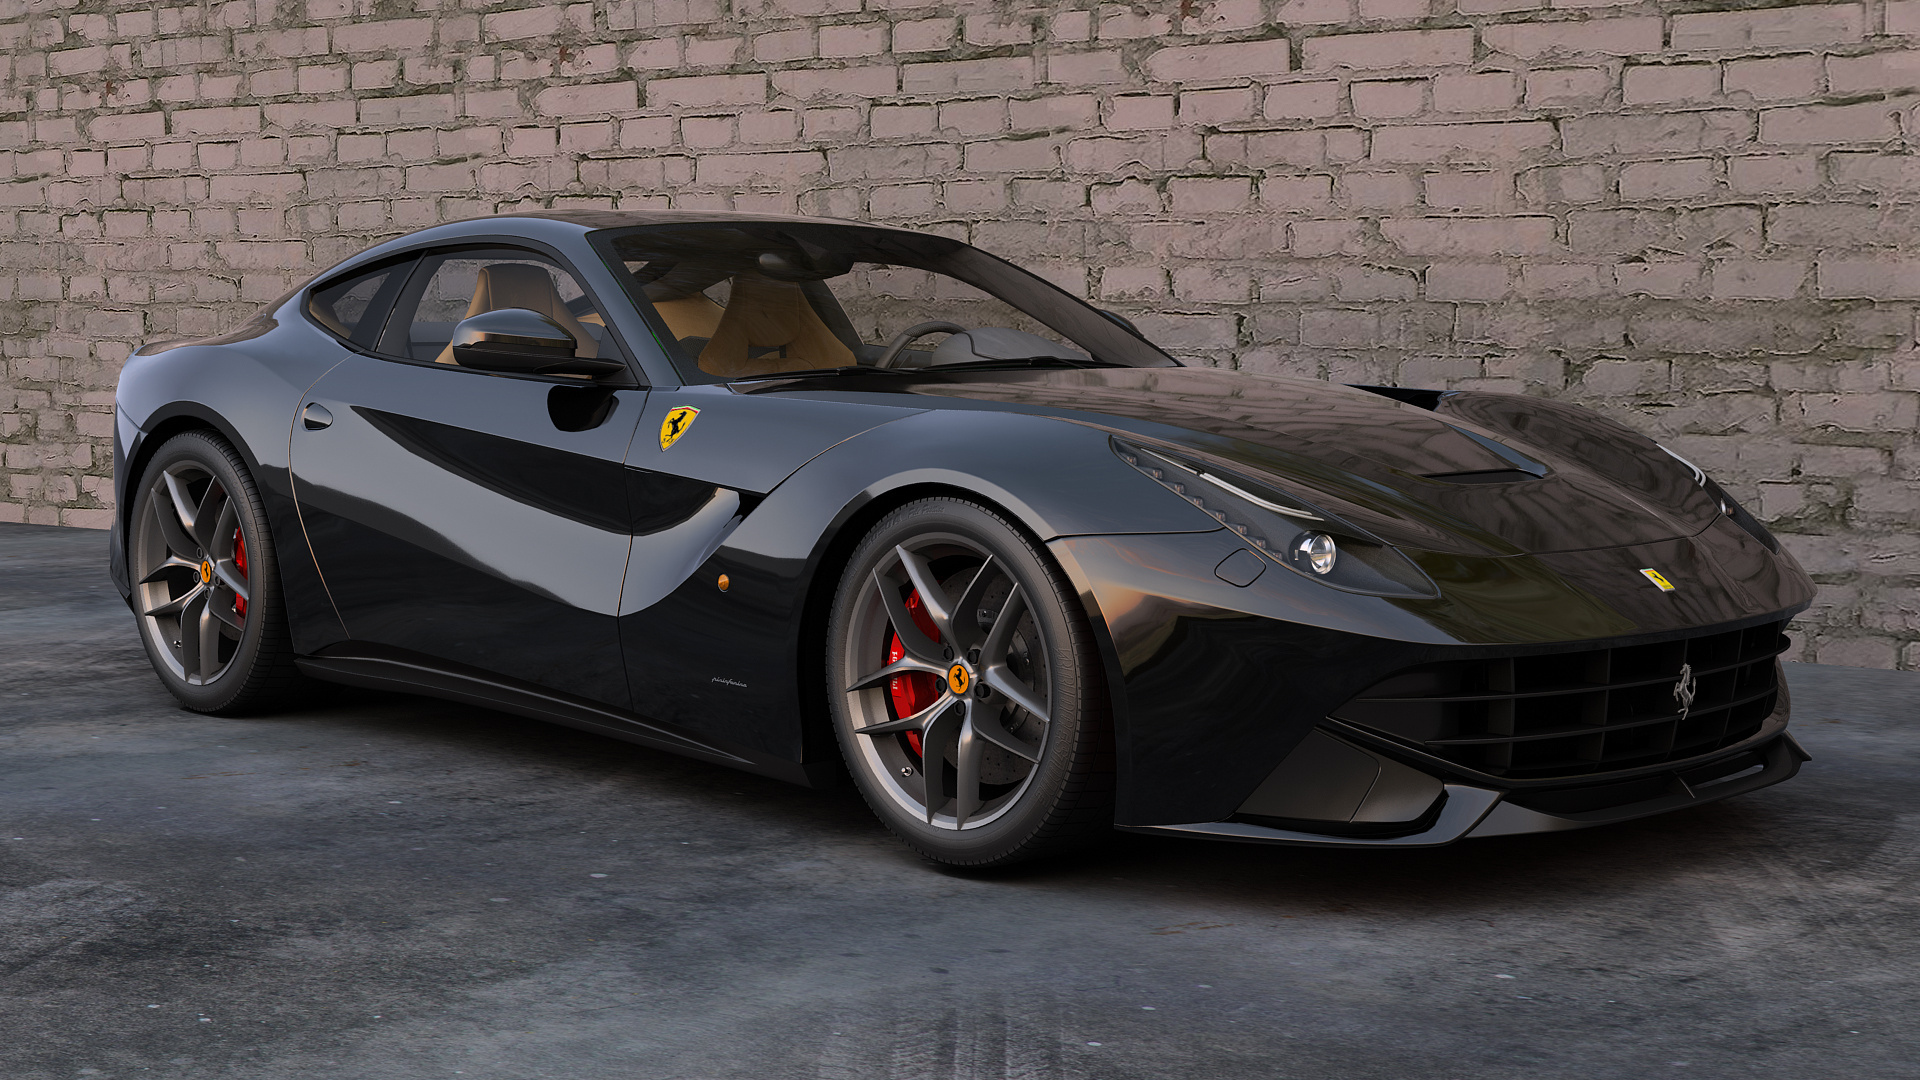 85 Ferrari F12berlinetta HD Wallpapers | Backgrounds - Wallpaper Abyss